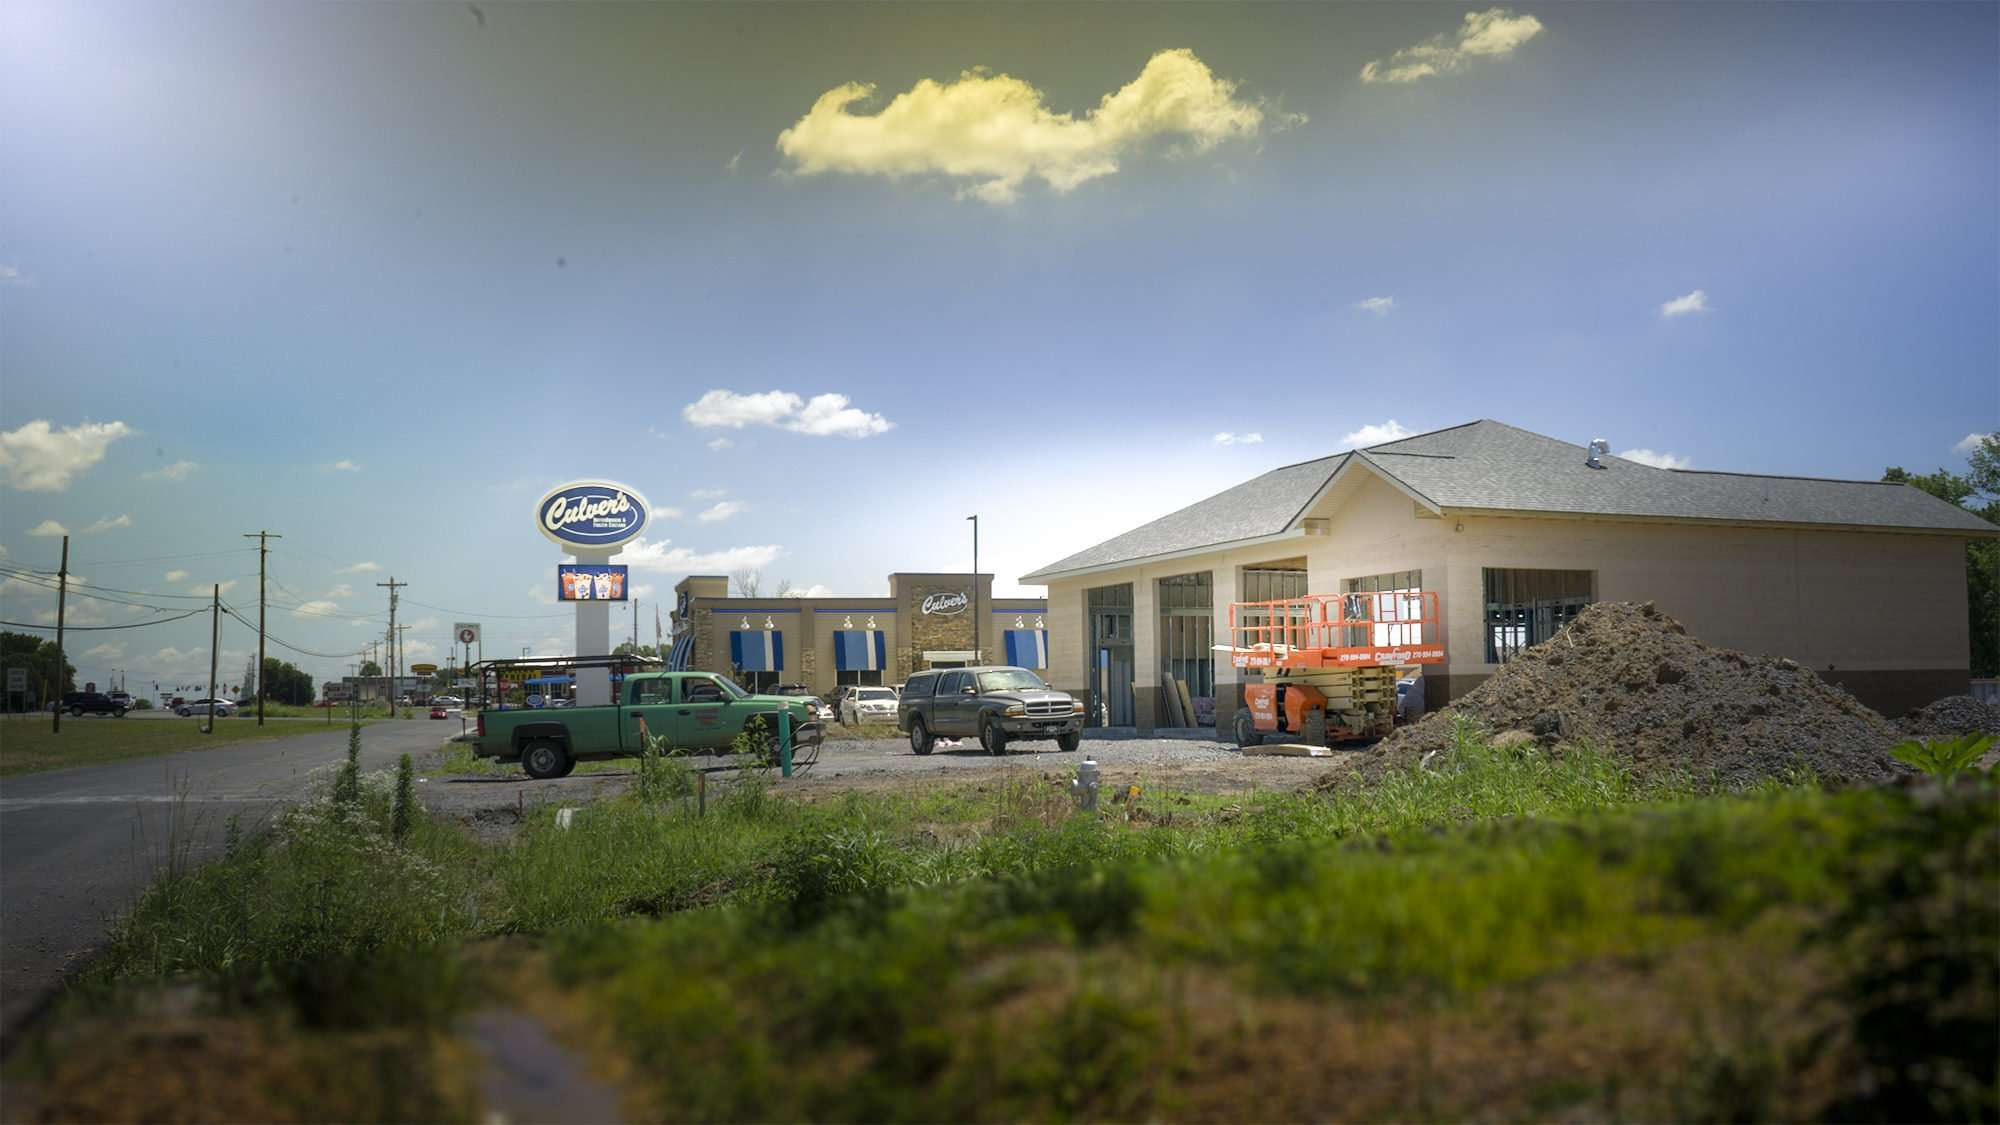 June 17, 2017 - Valvoline Instant Oil Change under construction on Old Hwy 60 by Culver's Paducah, KY/photonews247.com